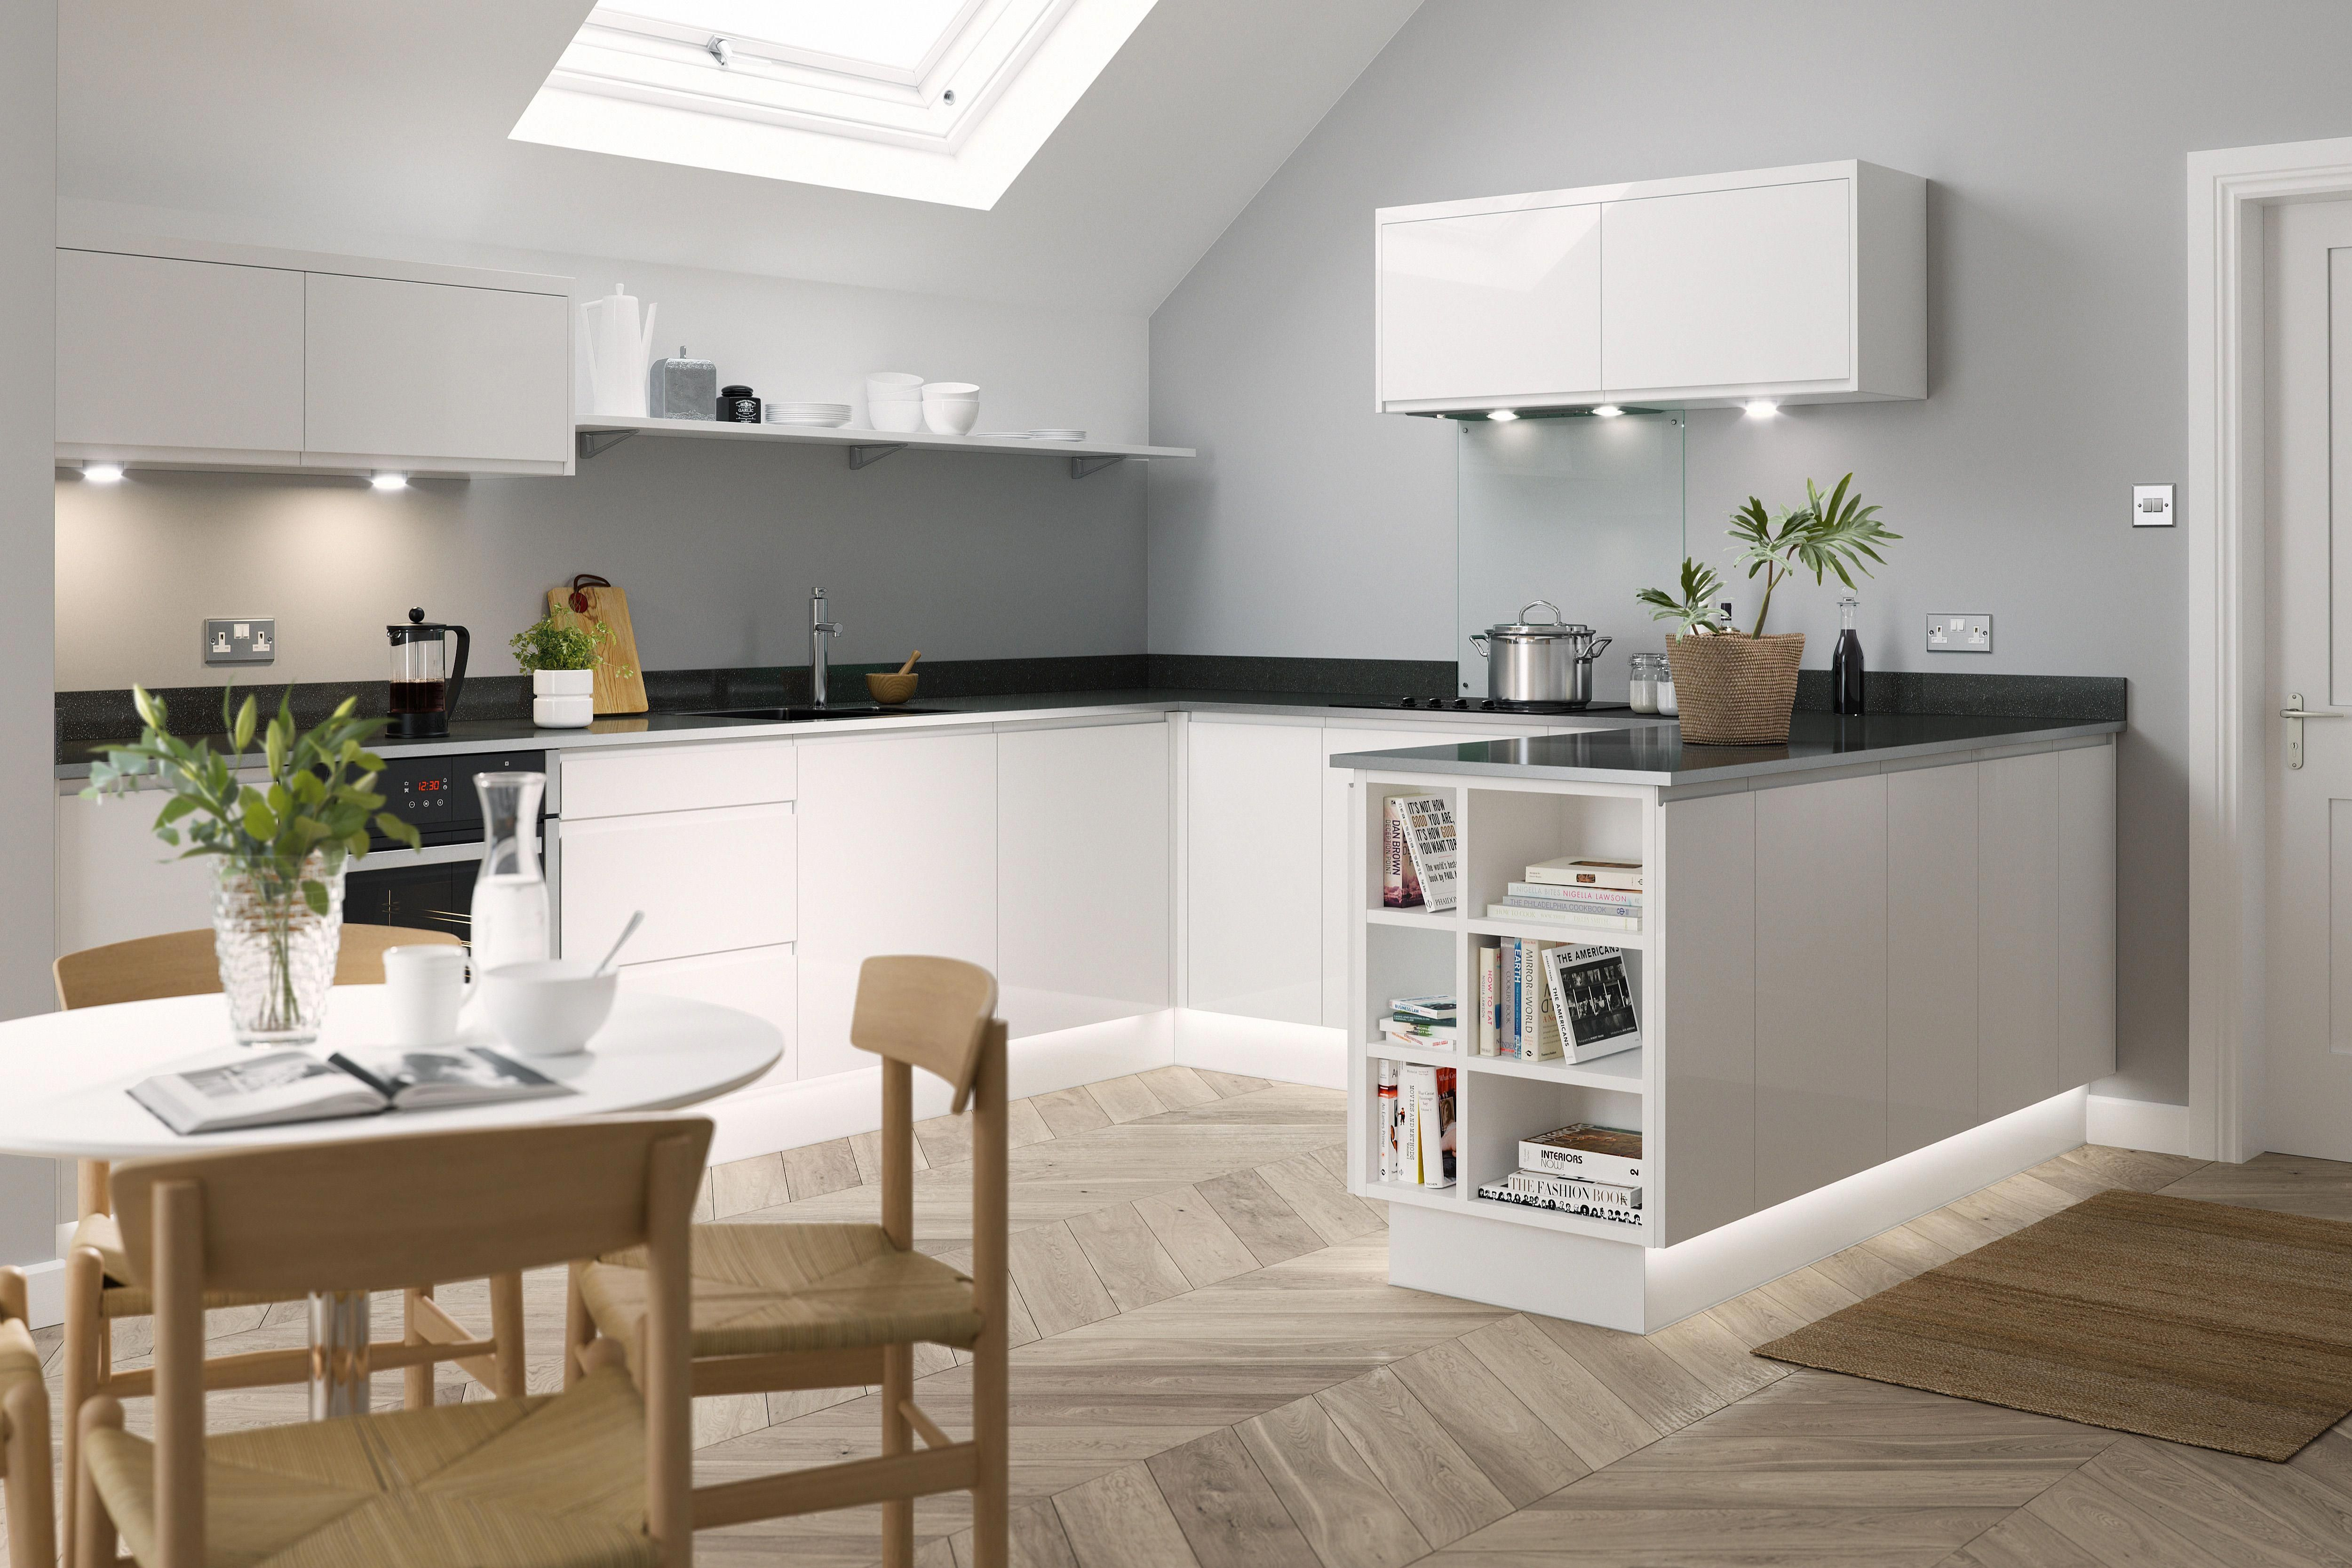 Ushaped kitchen design ideas Real Homes